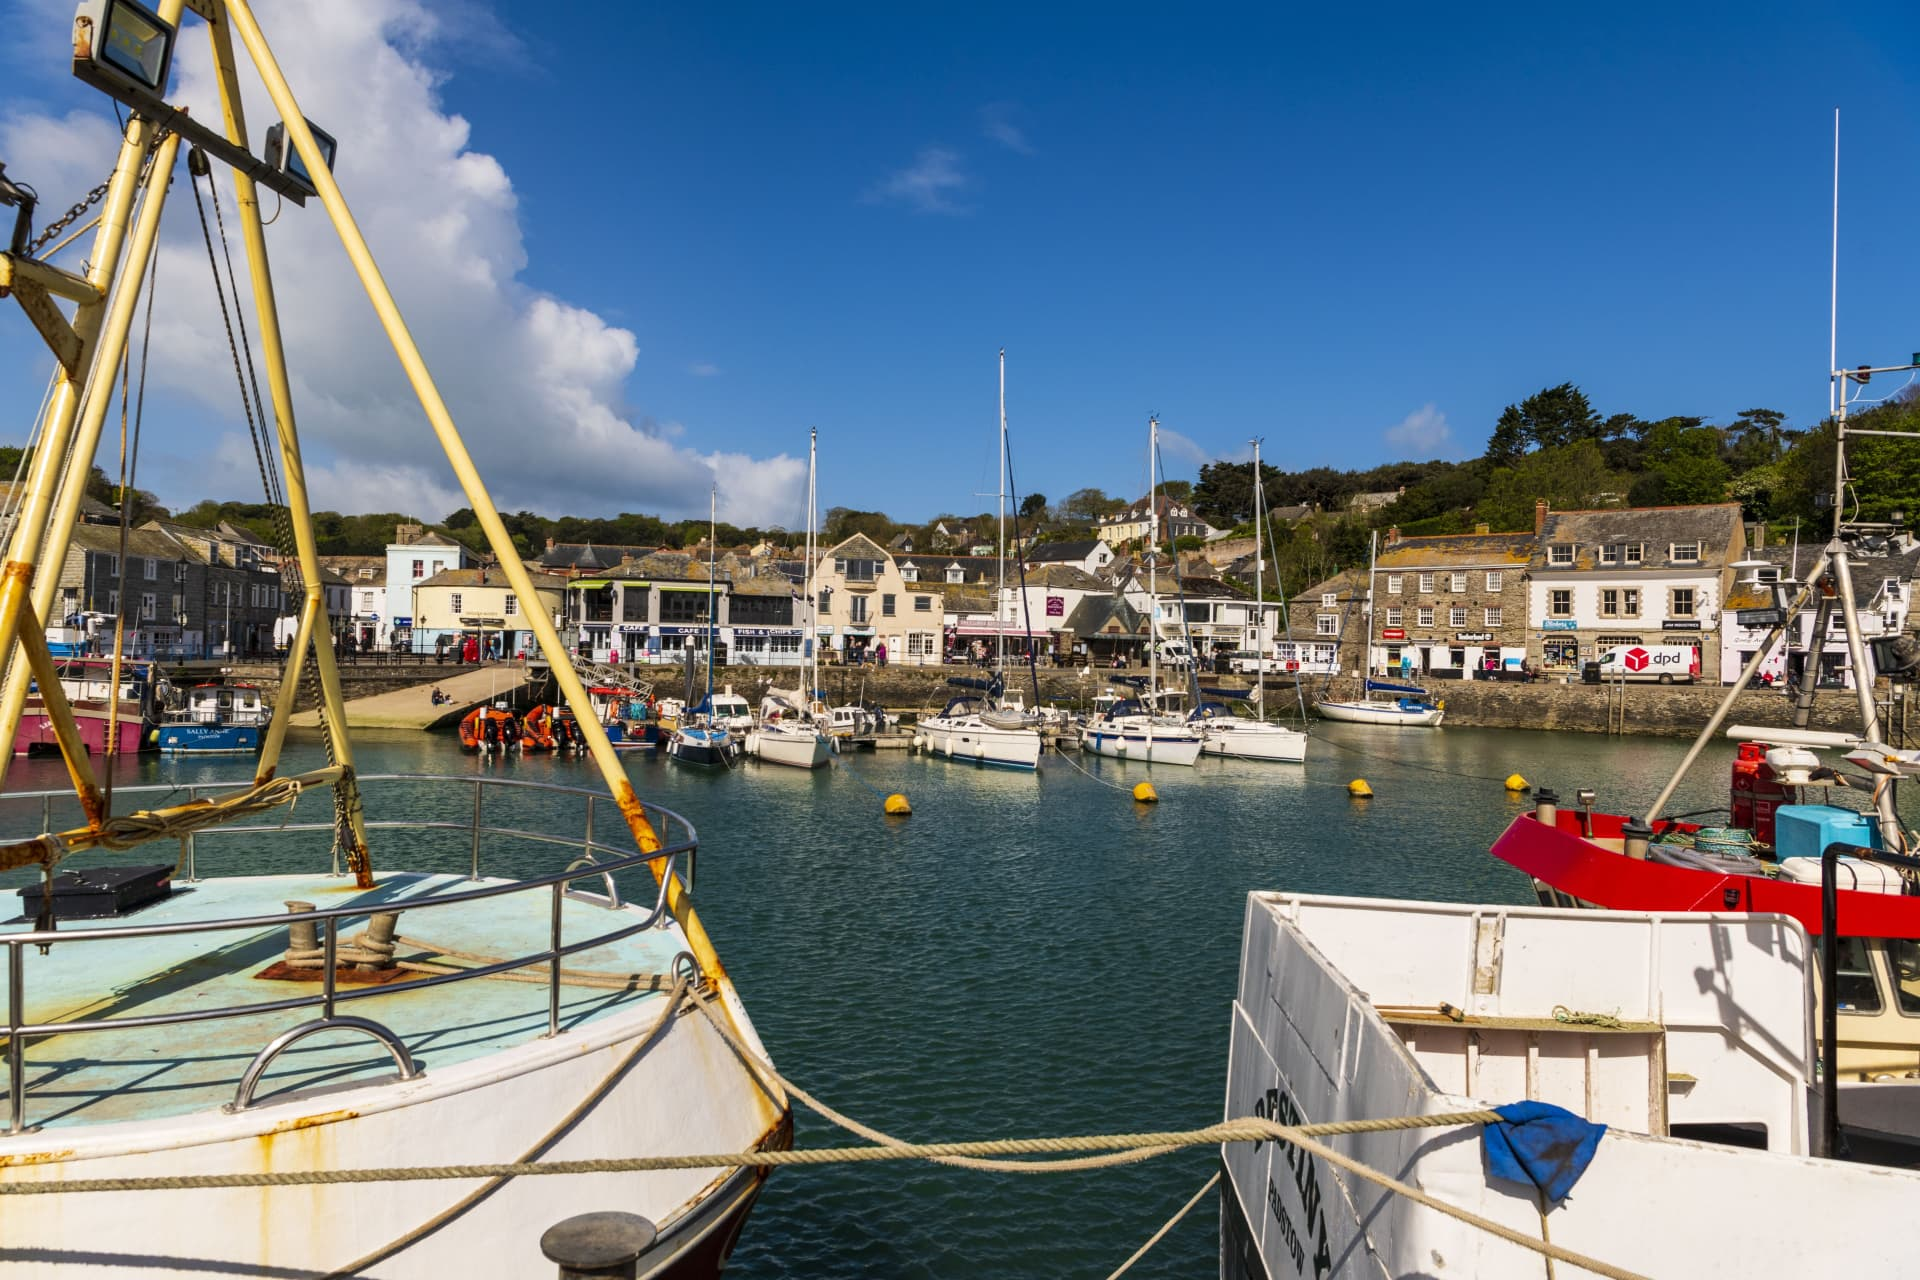 A view of the Padstow Harbour, a working fishing port in Cornwall and famous foodie destination.